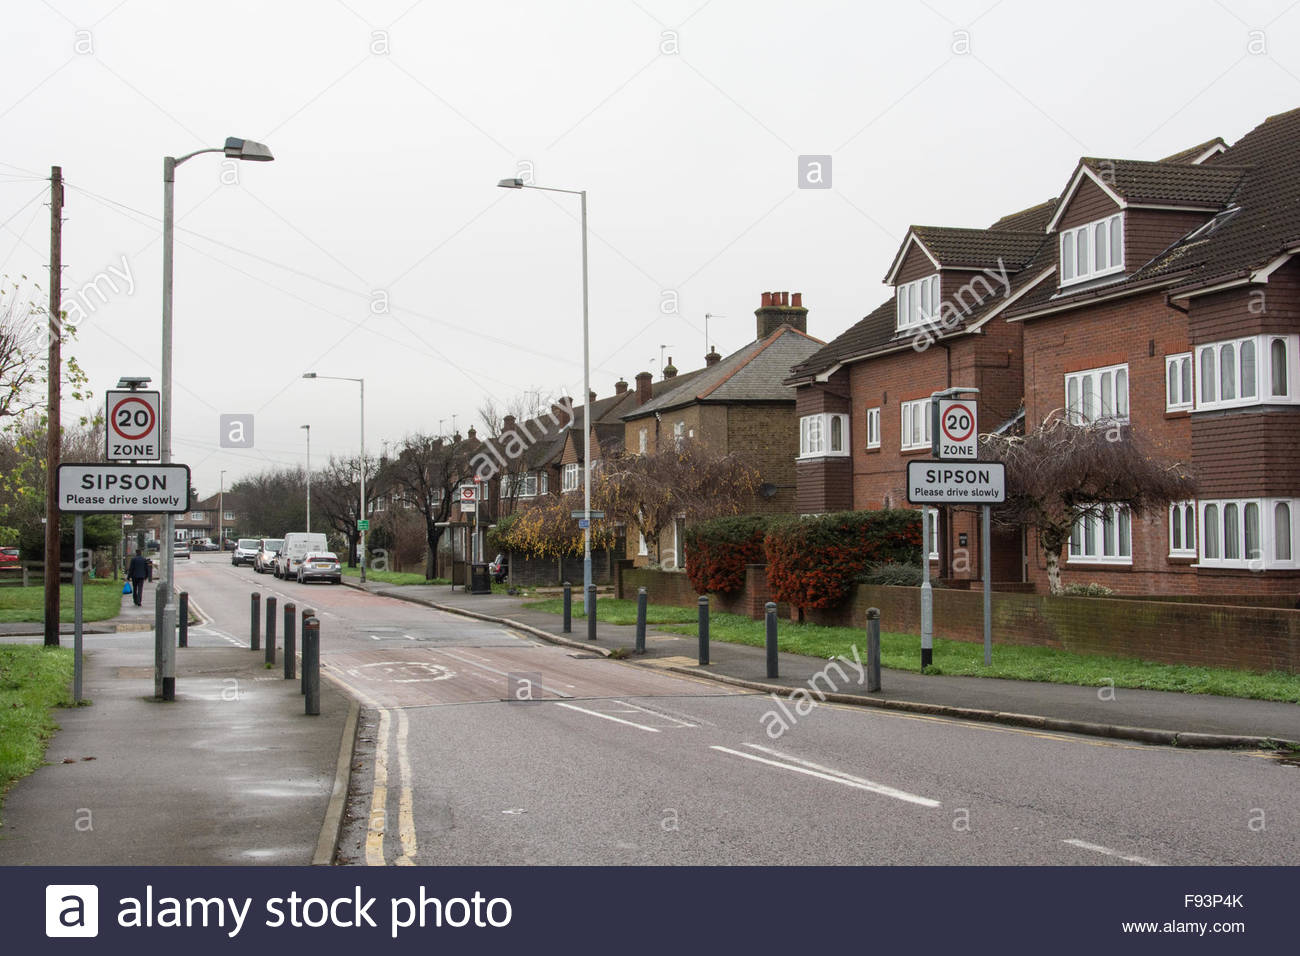 Sipson an ancient village threatened with destruction due to Heathrow Airport expansion - Stock Image